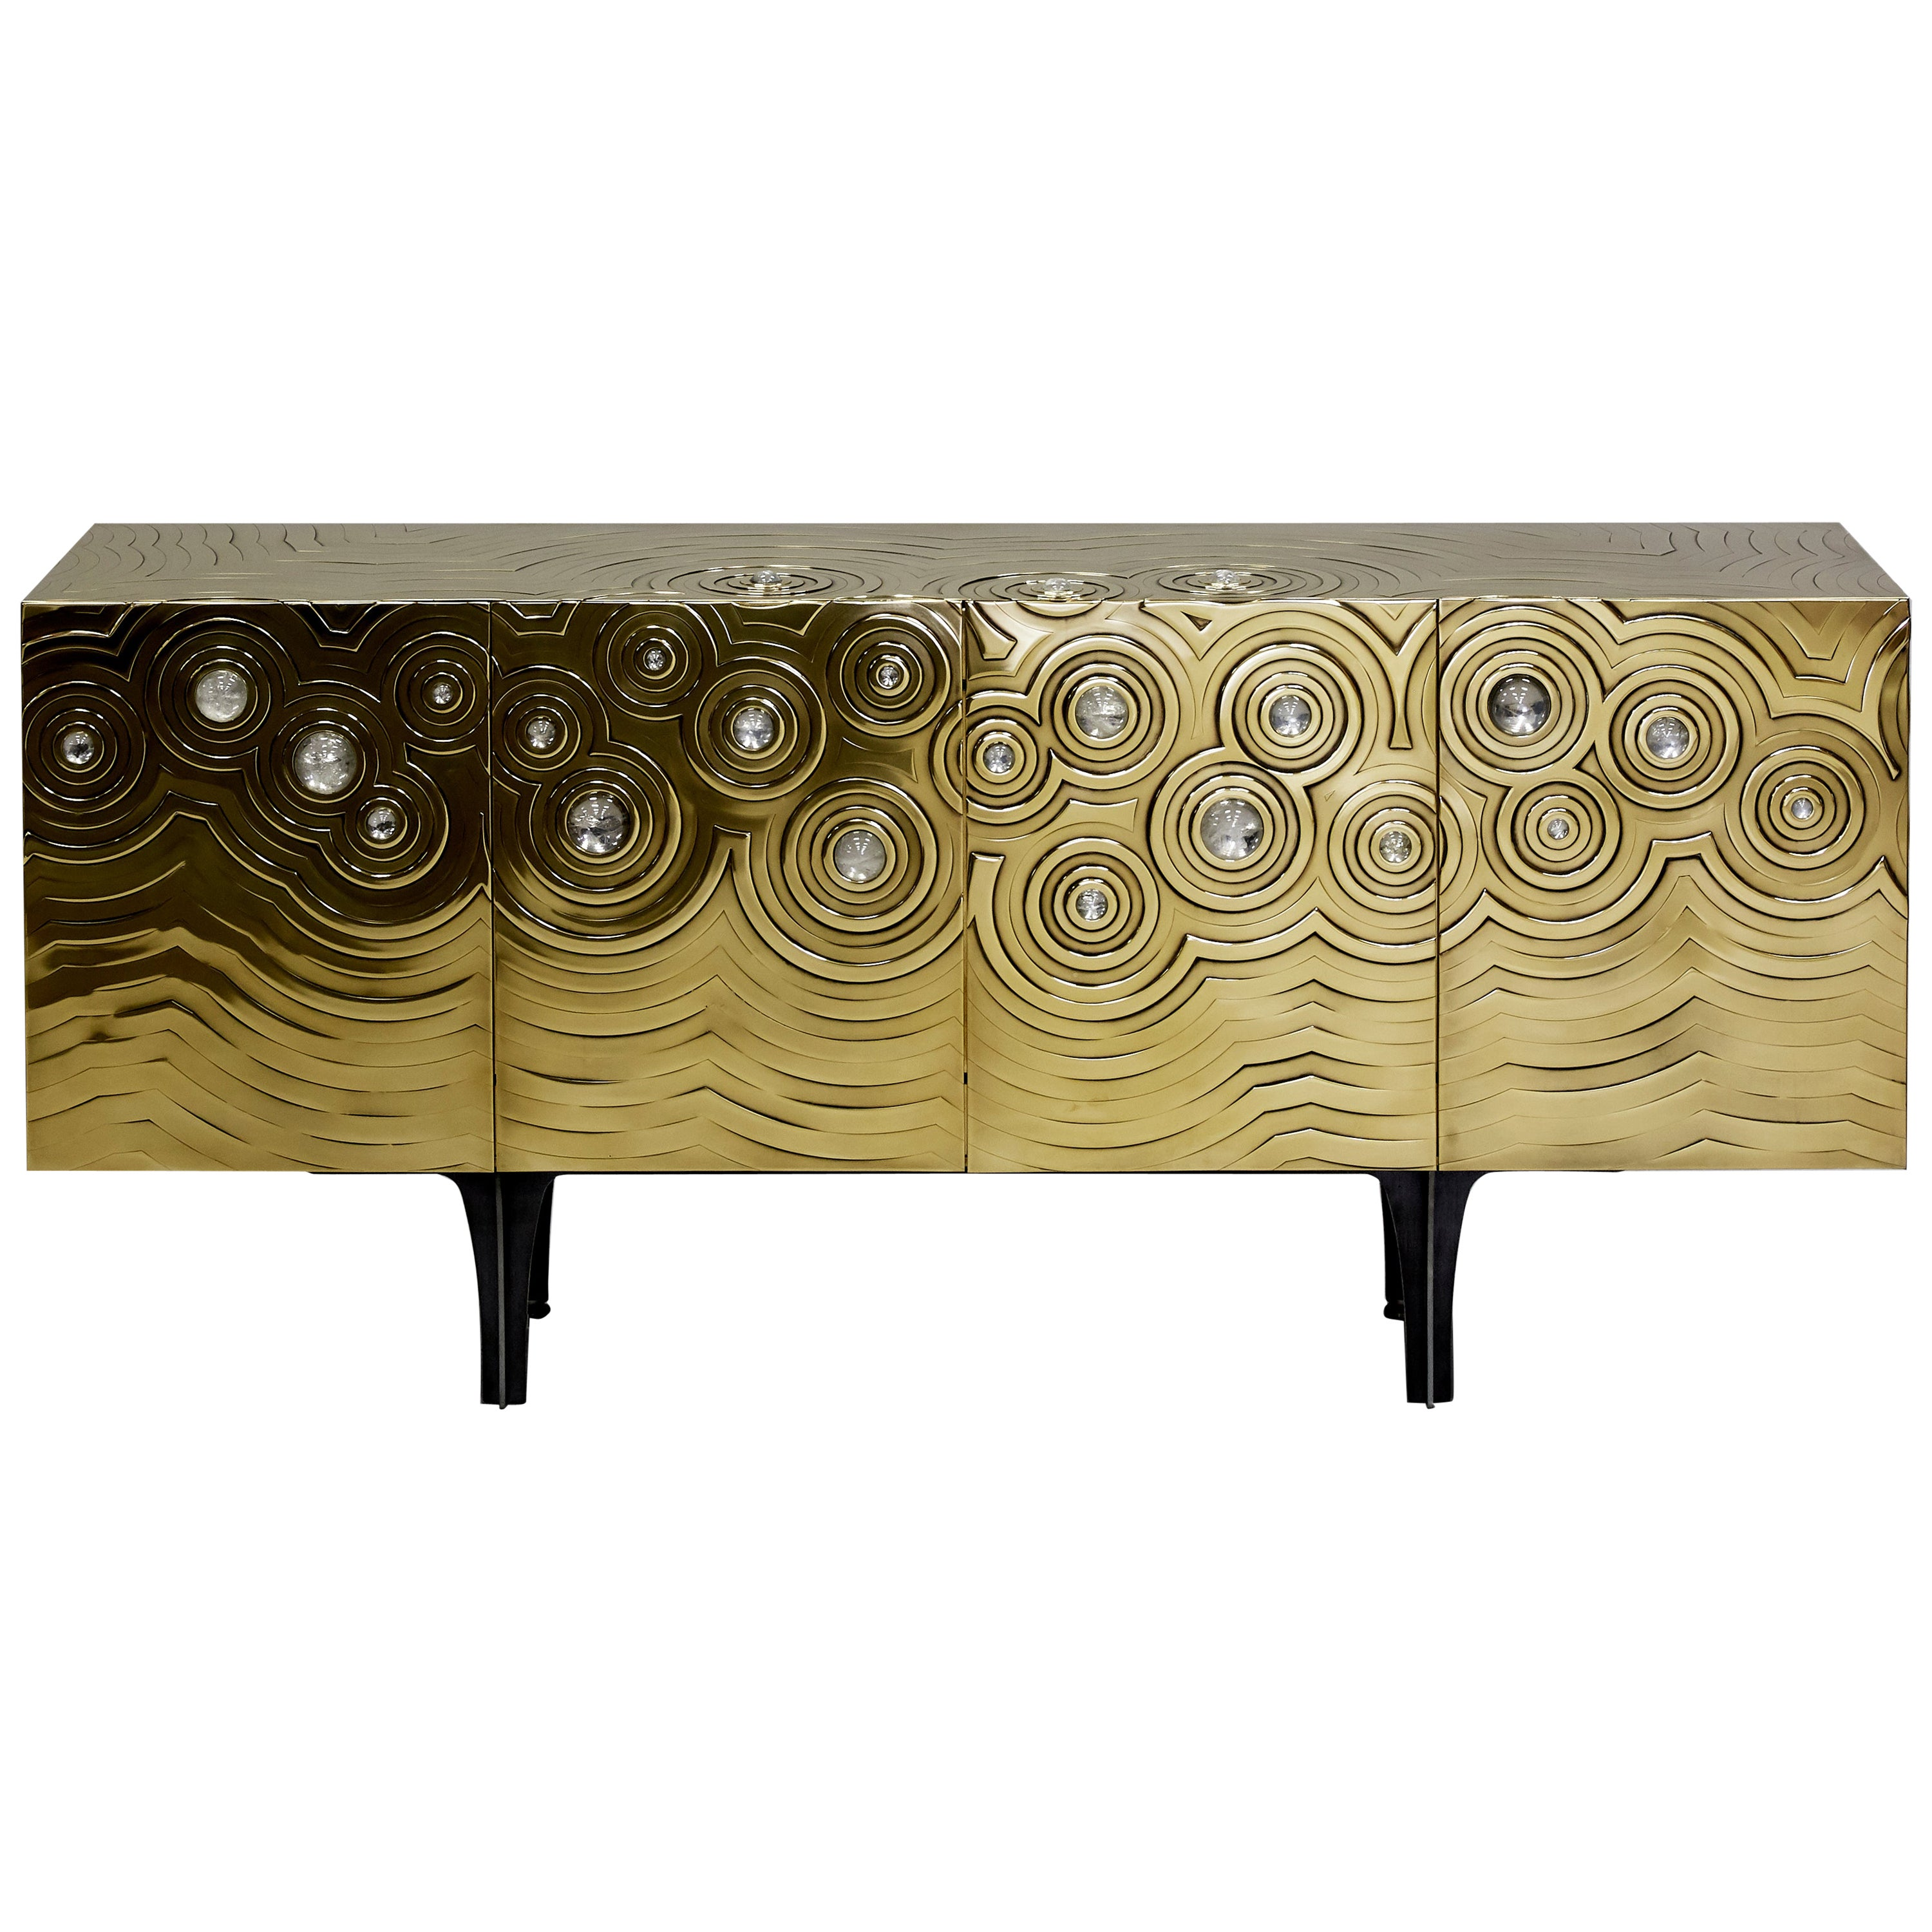 Brass, Wood & Black Steel Roepa Sideboard with Inlaid Rock Crystals, Atelier EB